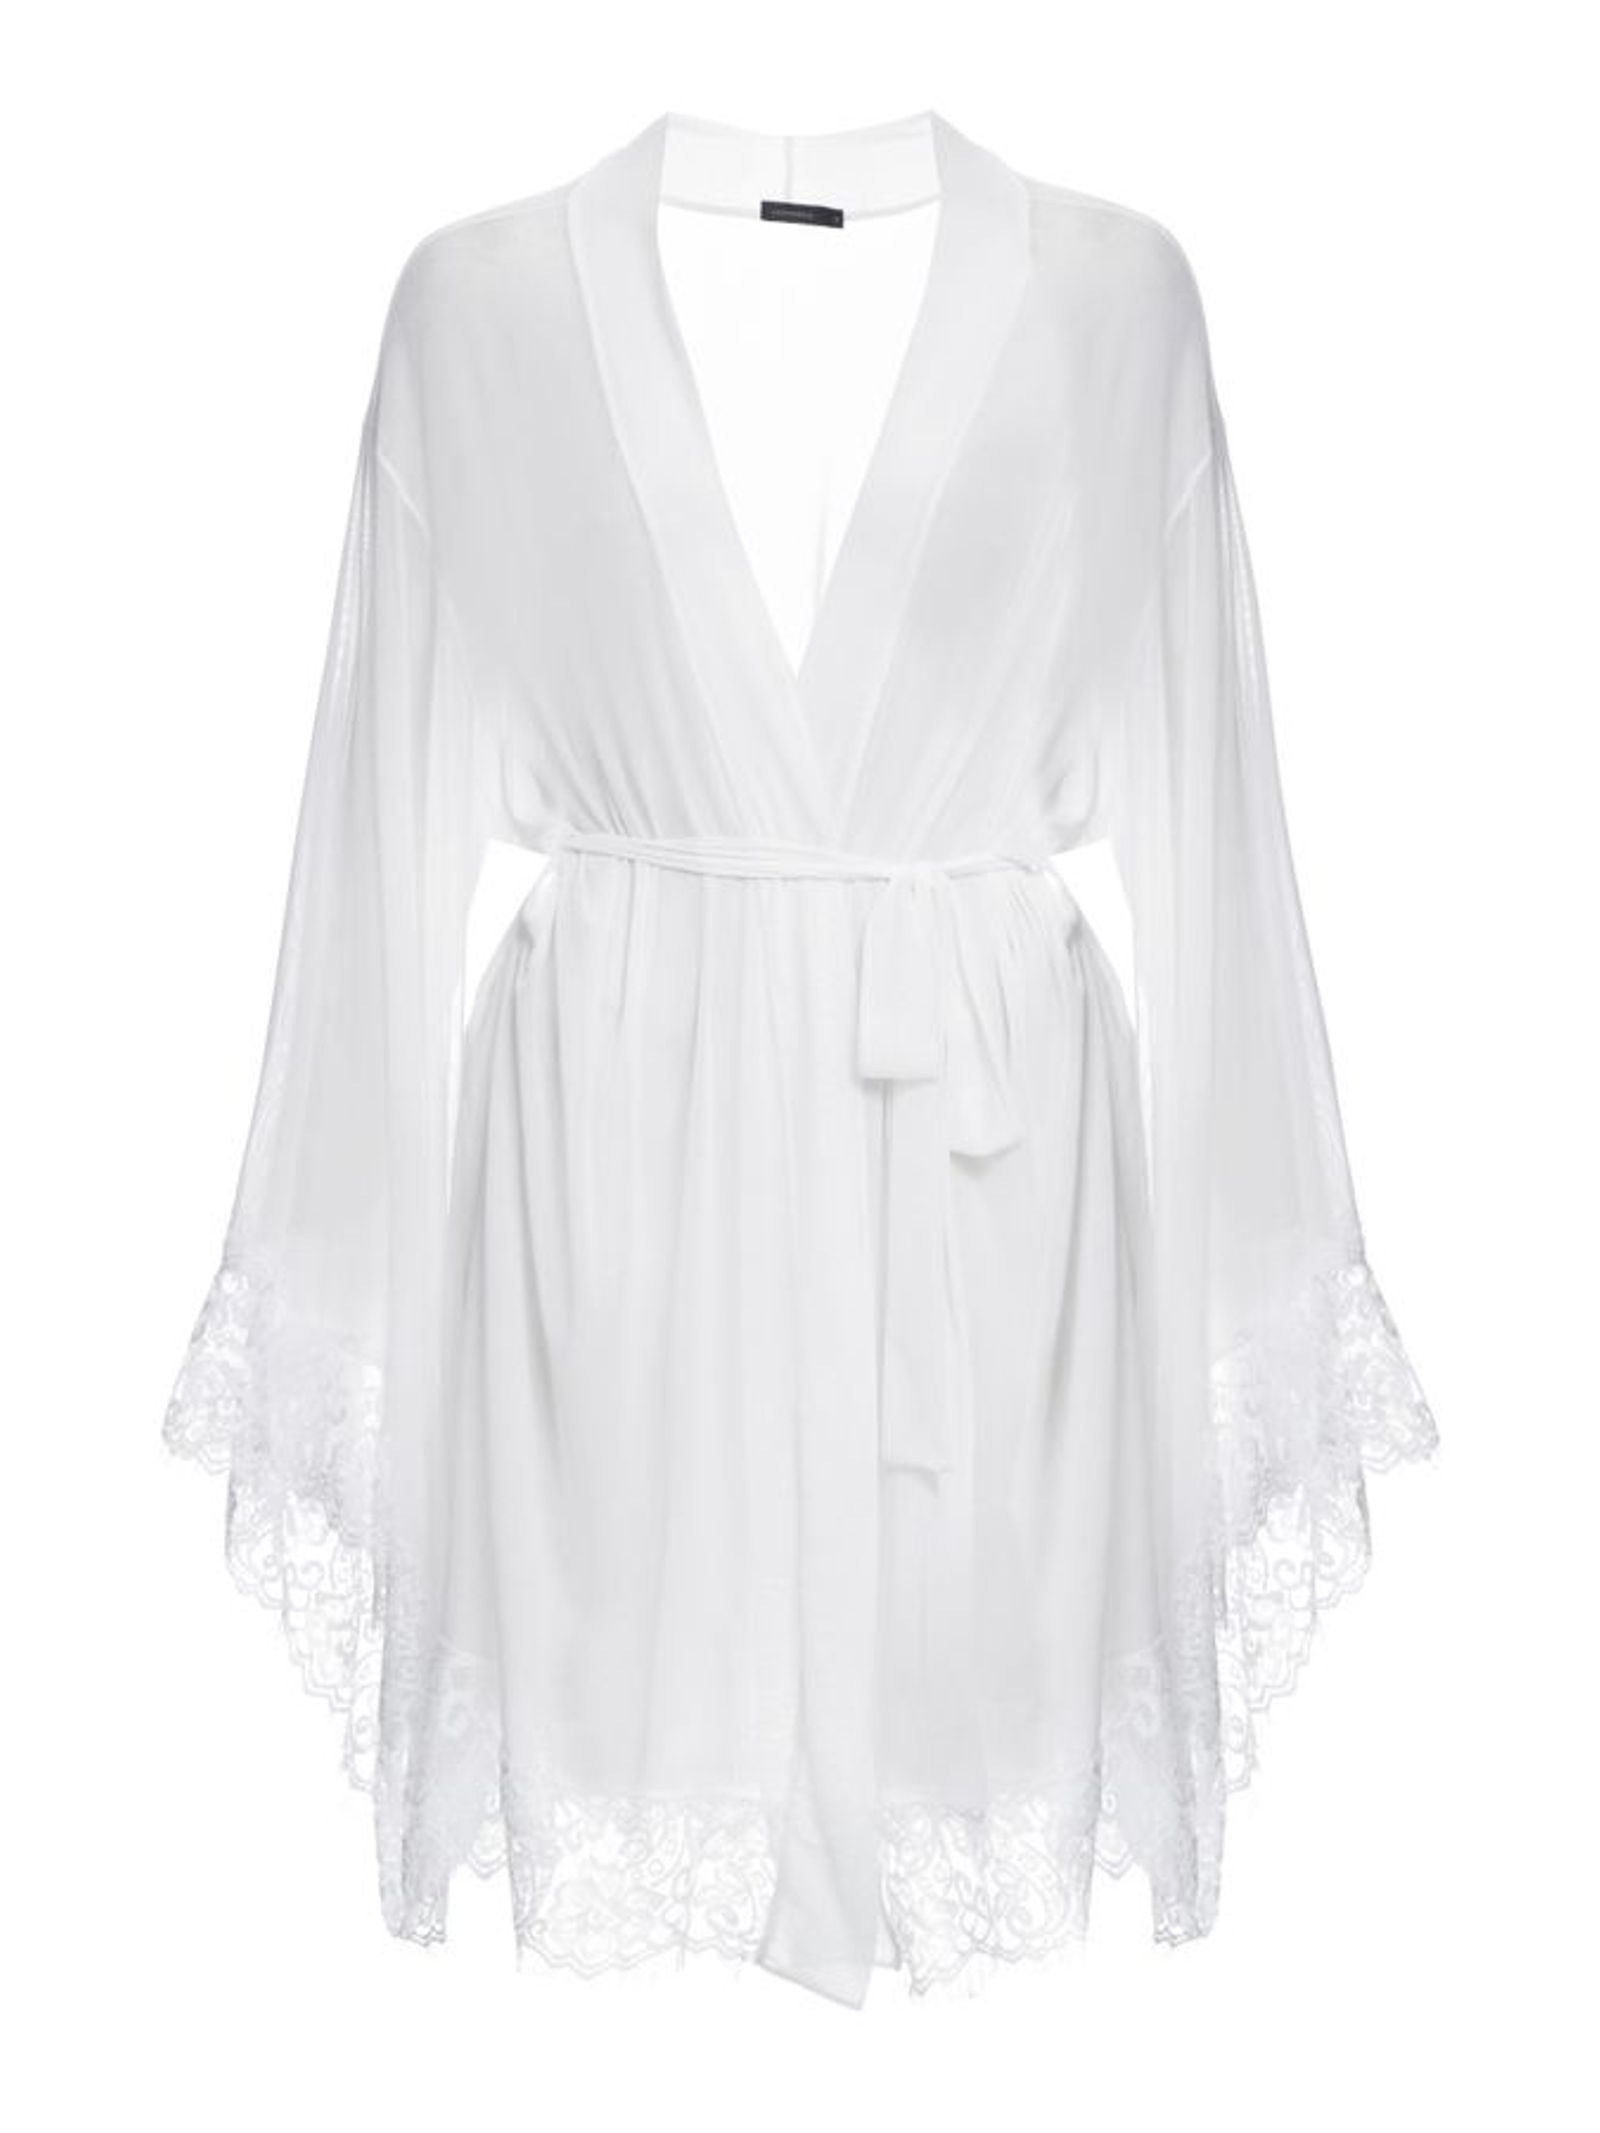 35070053_001_1-ROBE-CT-ML-TULE-PASSIONE